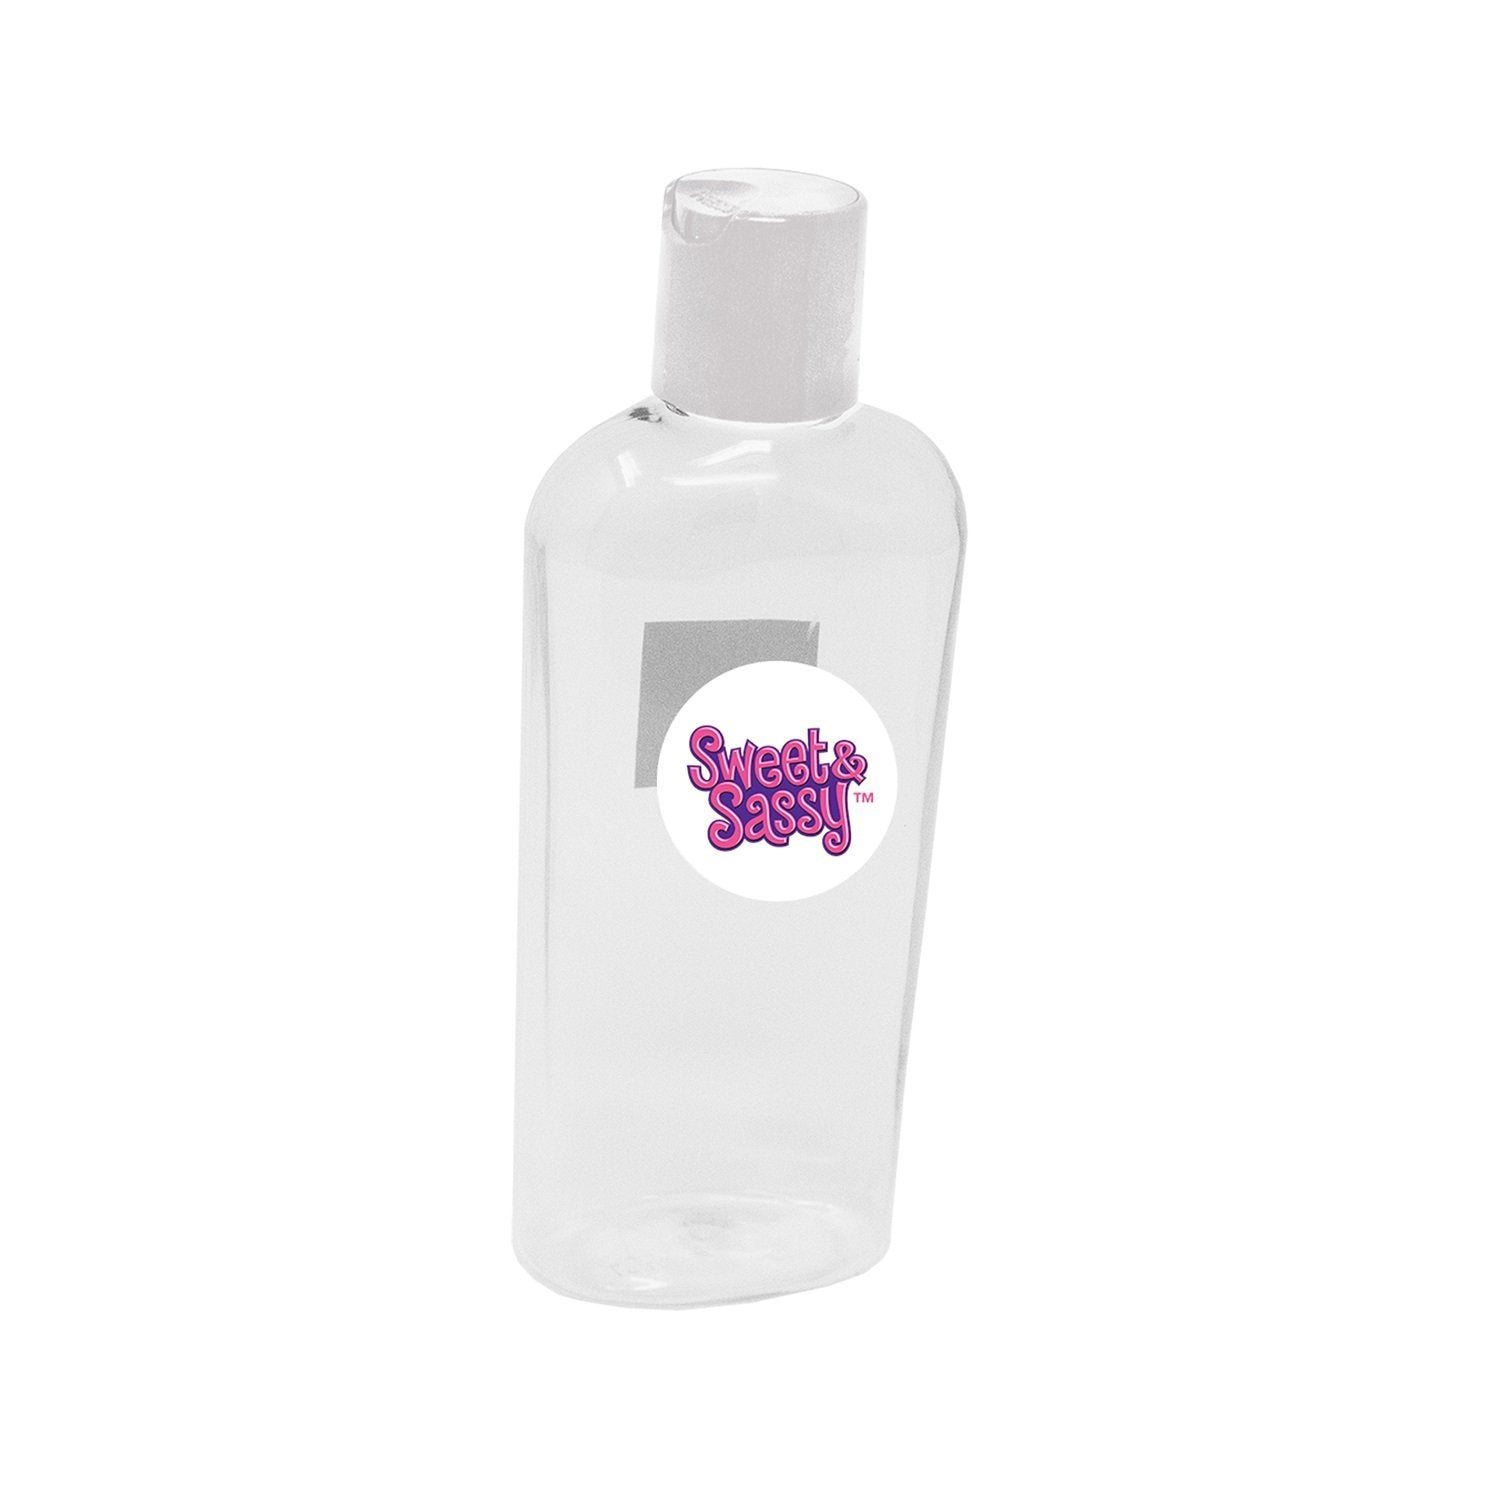 100 6-Ounce Lotion Containers with Lids